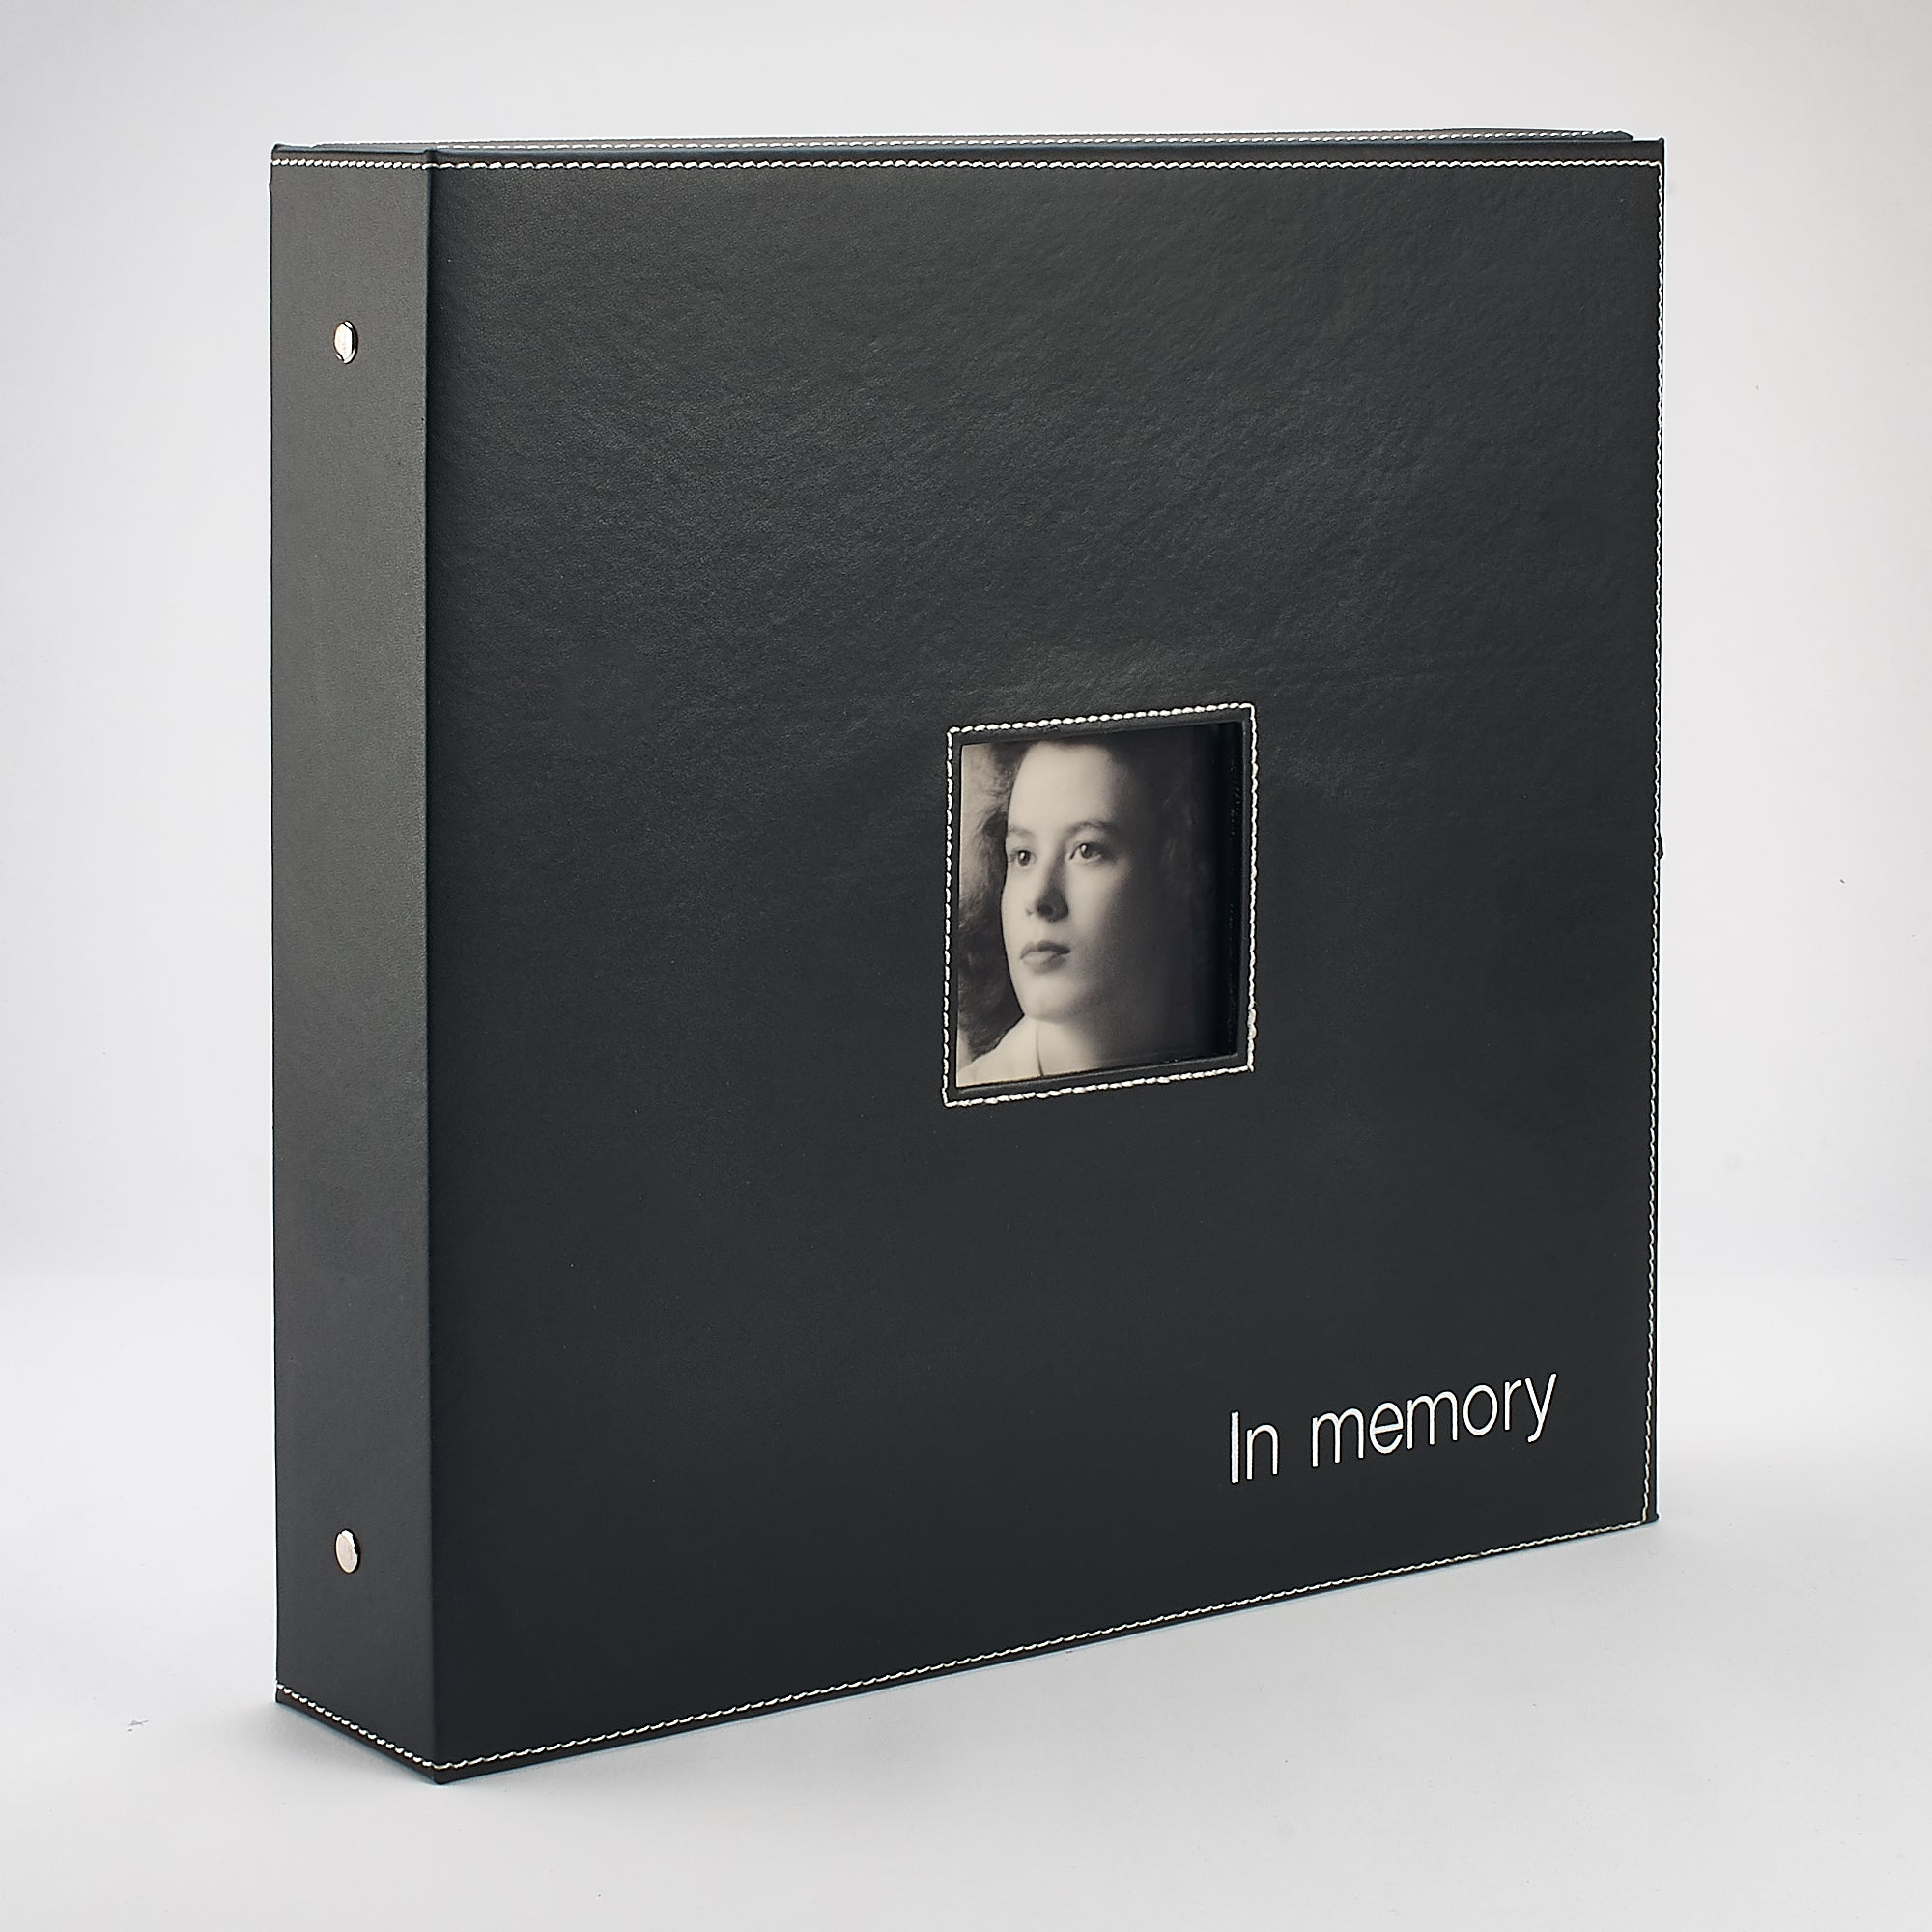 Genuine Leather 'In Memory' Book Box - Black